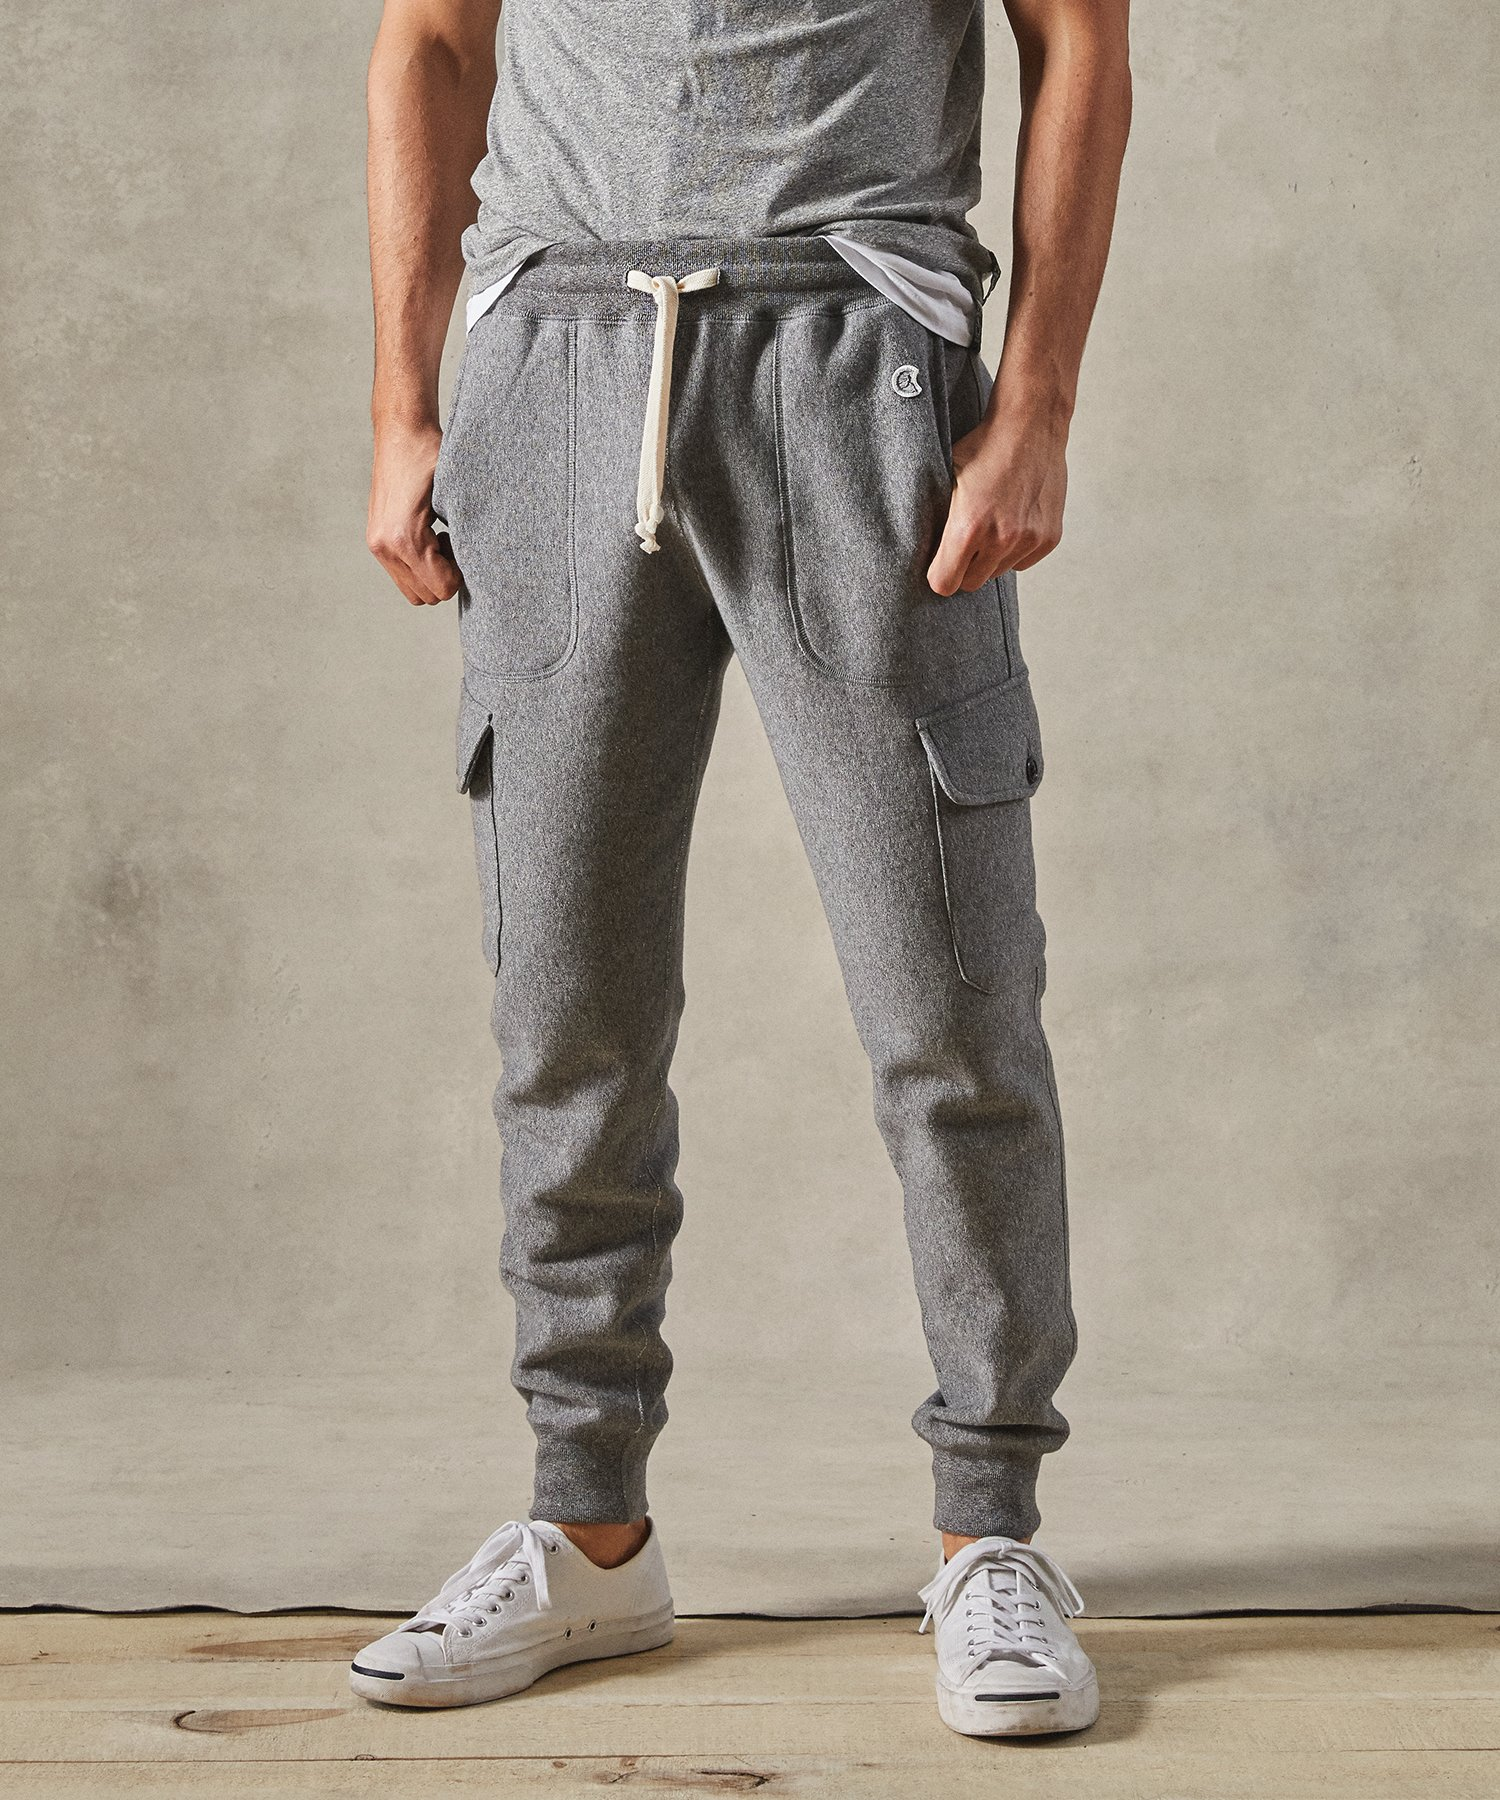 The Todd Snyder Utility Cargo Sweatpant is easy to match with a wide variety of garments.